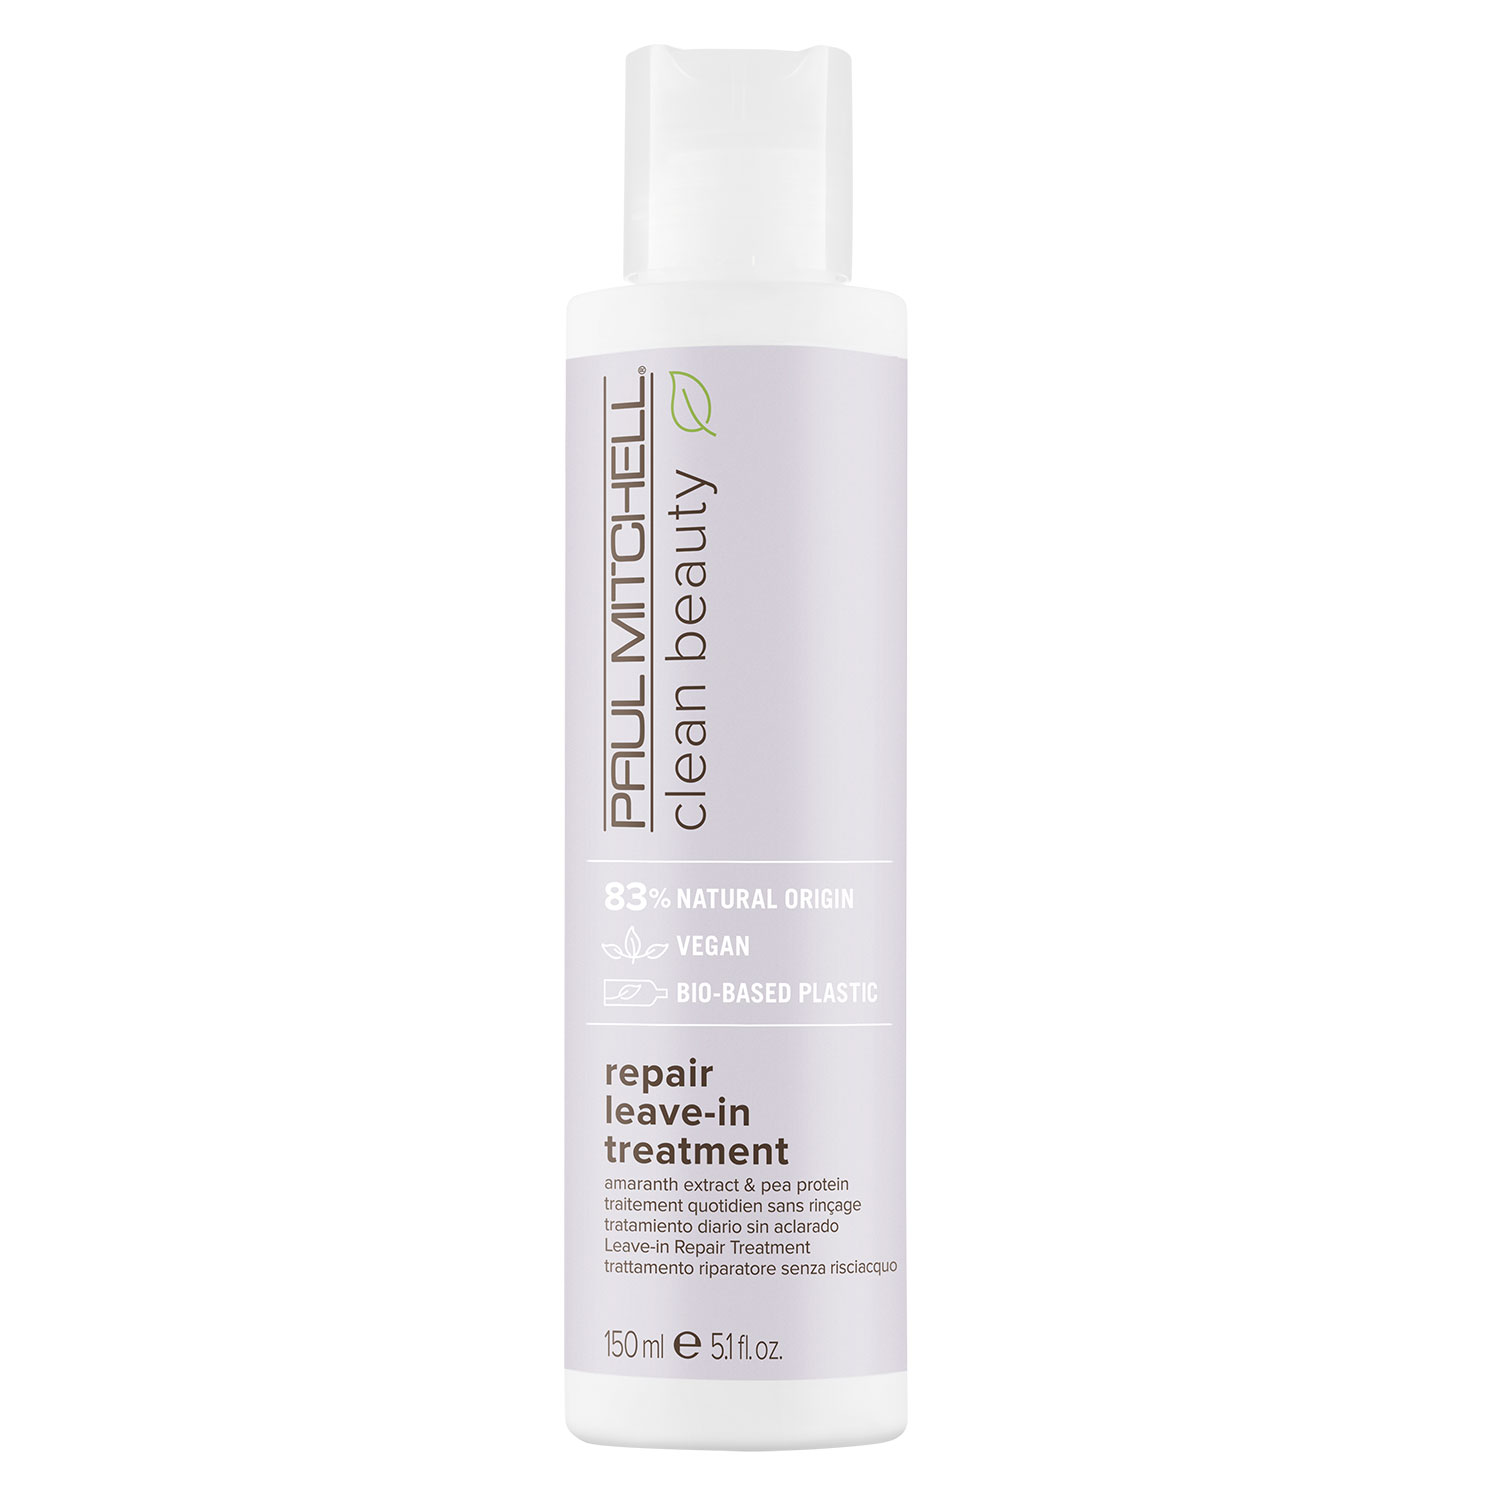 Paul Mitchell Clean Beauty - Repair Leave-In Treatment